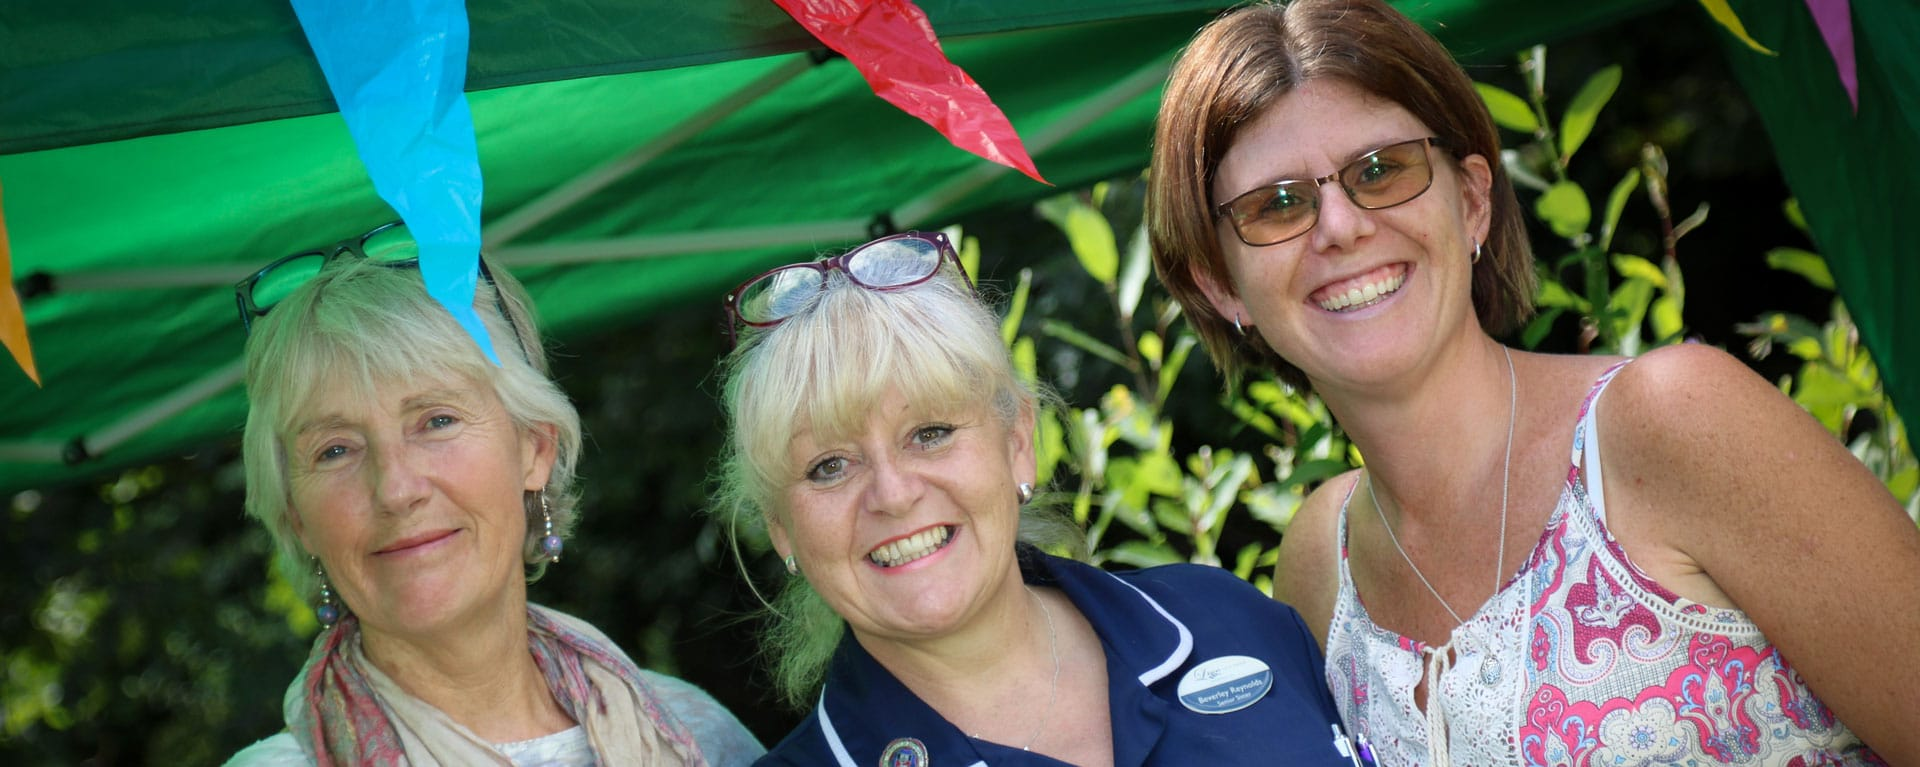 Nurse and residents family members smiling at the fete